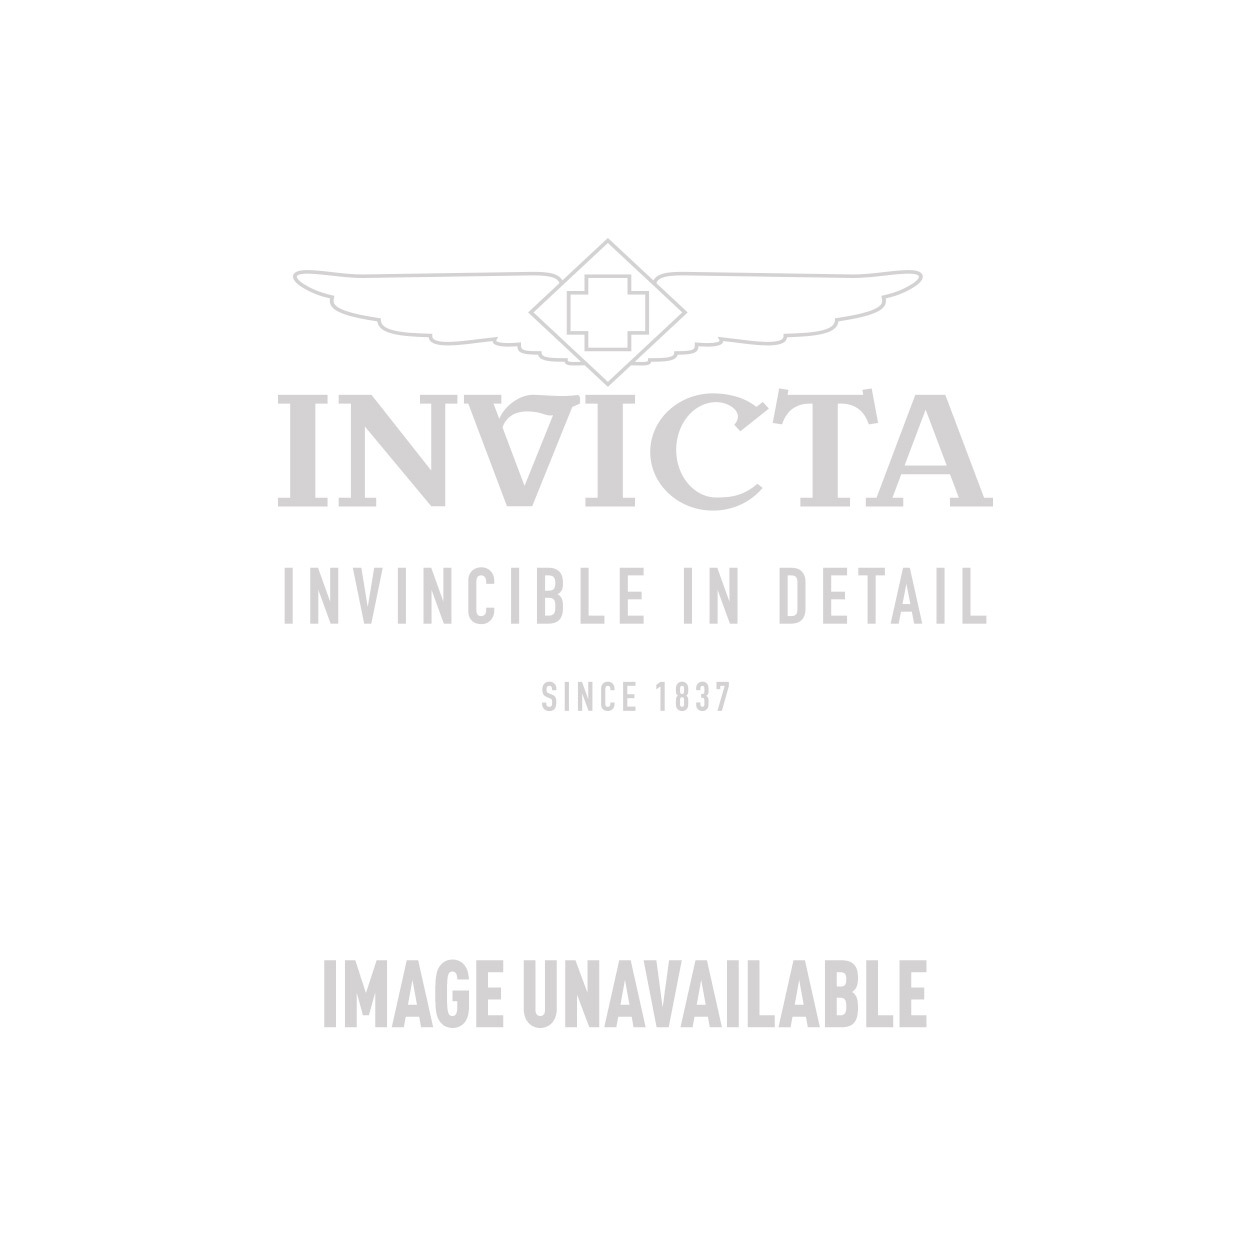 Invicta Excursion Swiss Made Quartz Watch - Stainless Steel case Stainless Steel band - Model 17468